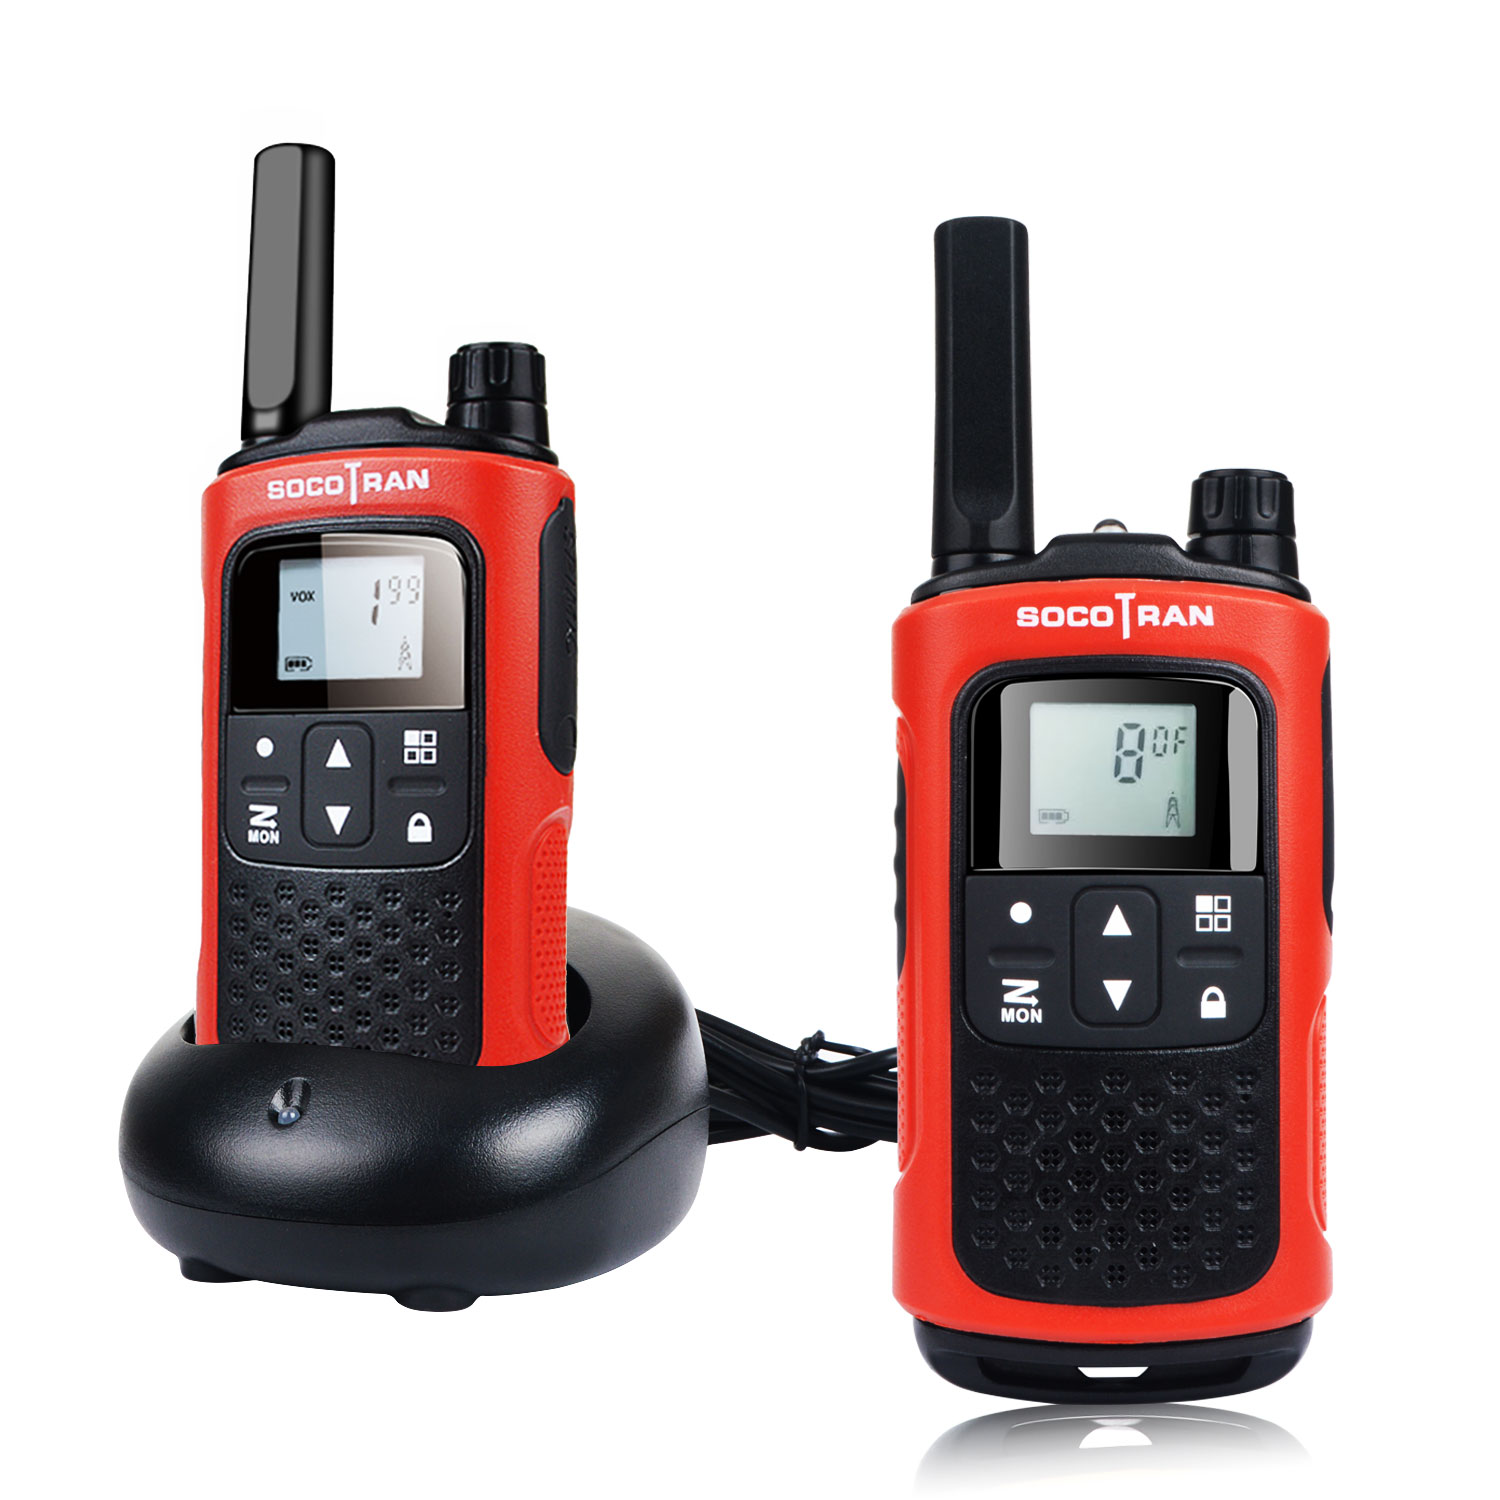 Фото - PMR 446 License-free walkie talkies for adults rechargeable Scocotran 2 Way Radio 8 Channels Scan VOX Ham Radio Portable pascal pagani ultra wideband radio propagation channels